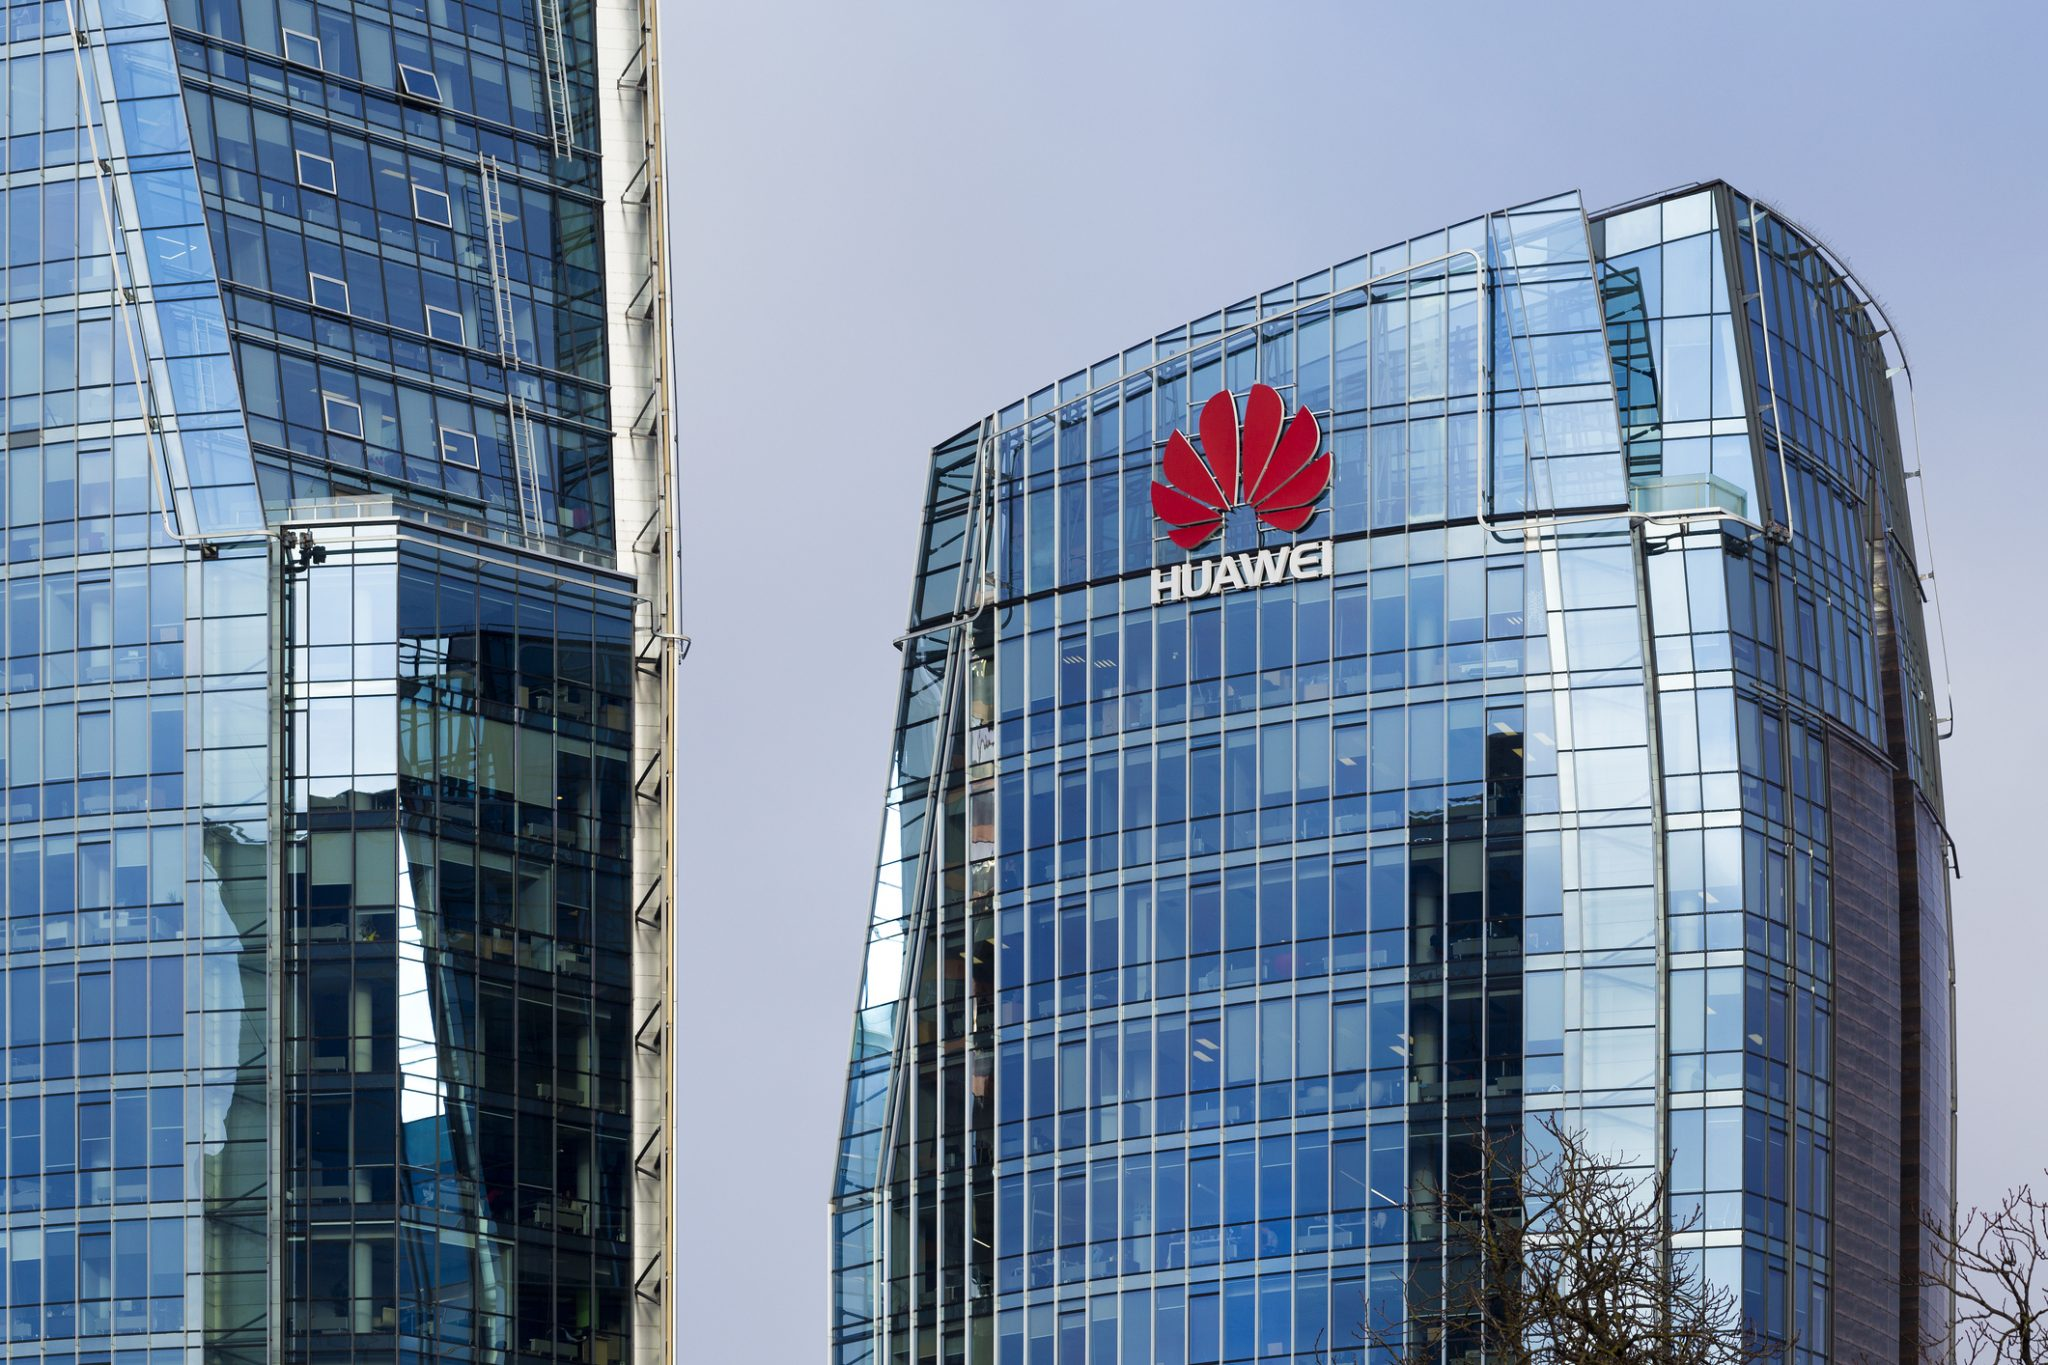 Huawei signs new deal to develop 5G network in Russia